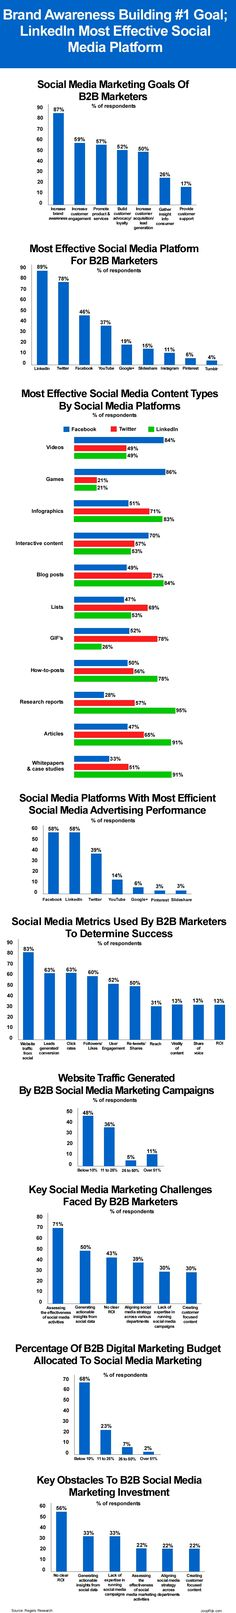 A new survey among 342 worldwide business-to-business (B2B) marketers from a variety of industries reveals that increasing brand awareness is the main goal of almost all B2B marketers involved with social media marketing and that LinkedIn is the most effective social media platform. More survey details here: http://joopcrijk.com/social-media-marketing-stats/ #socialmedia #socialmediamarketing #b2bmarketing